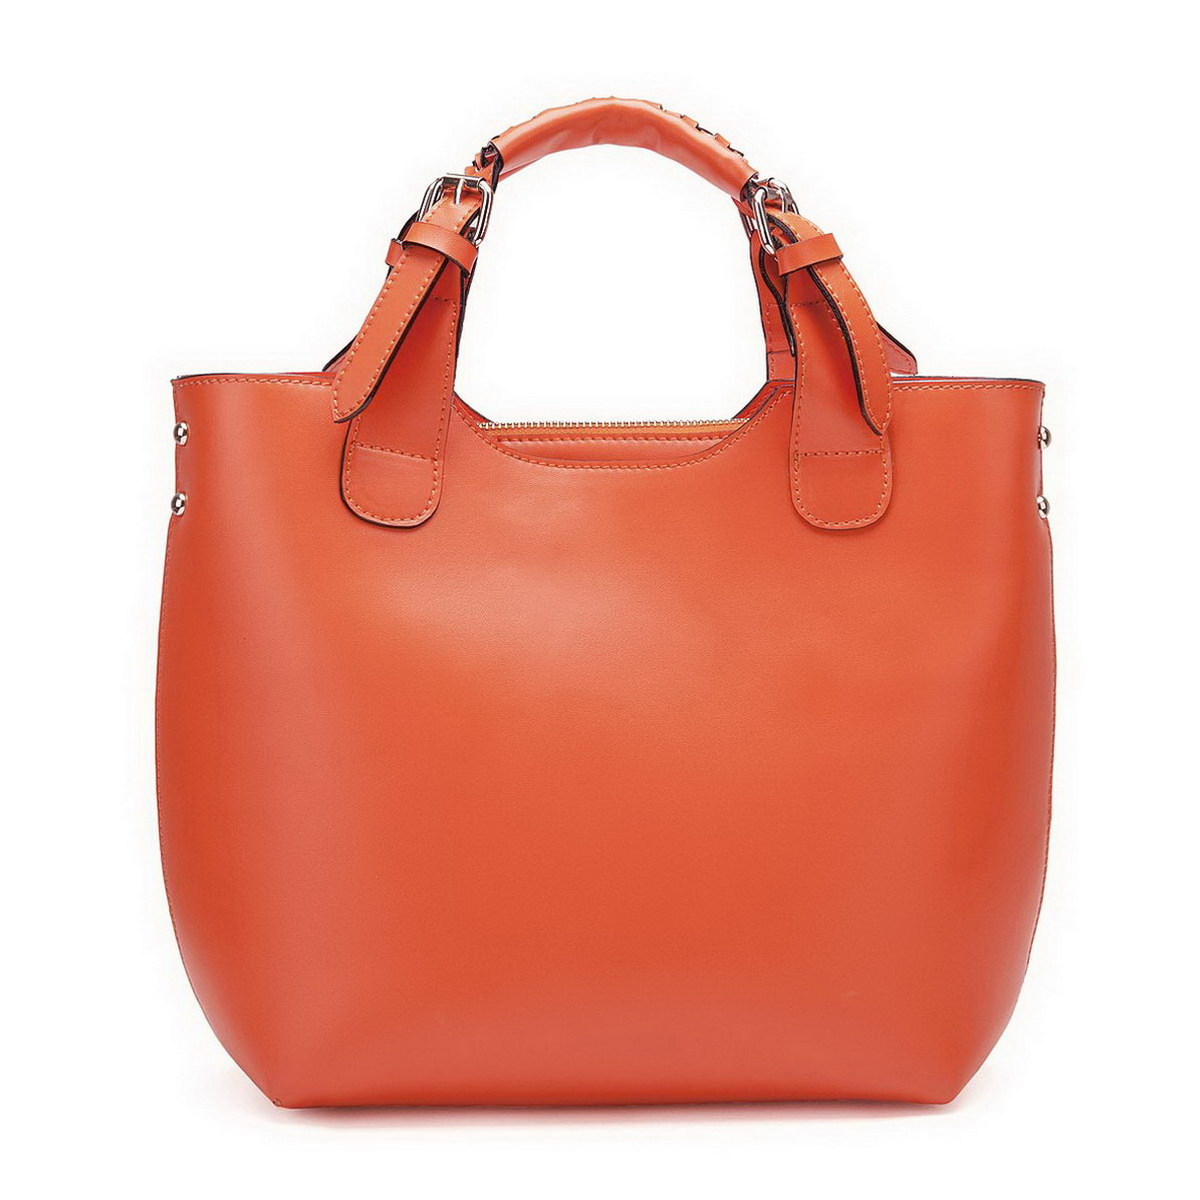 ... > Women's Bags > Tote Bags > NUCELLE leather women Tote bag ...